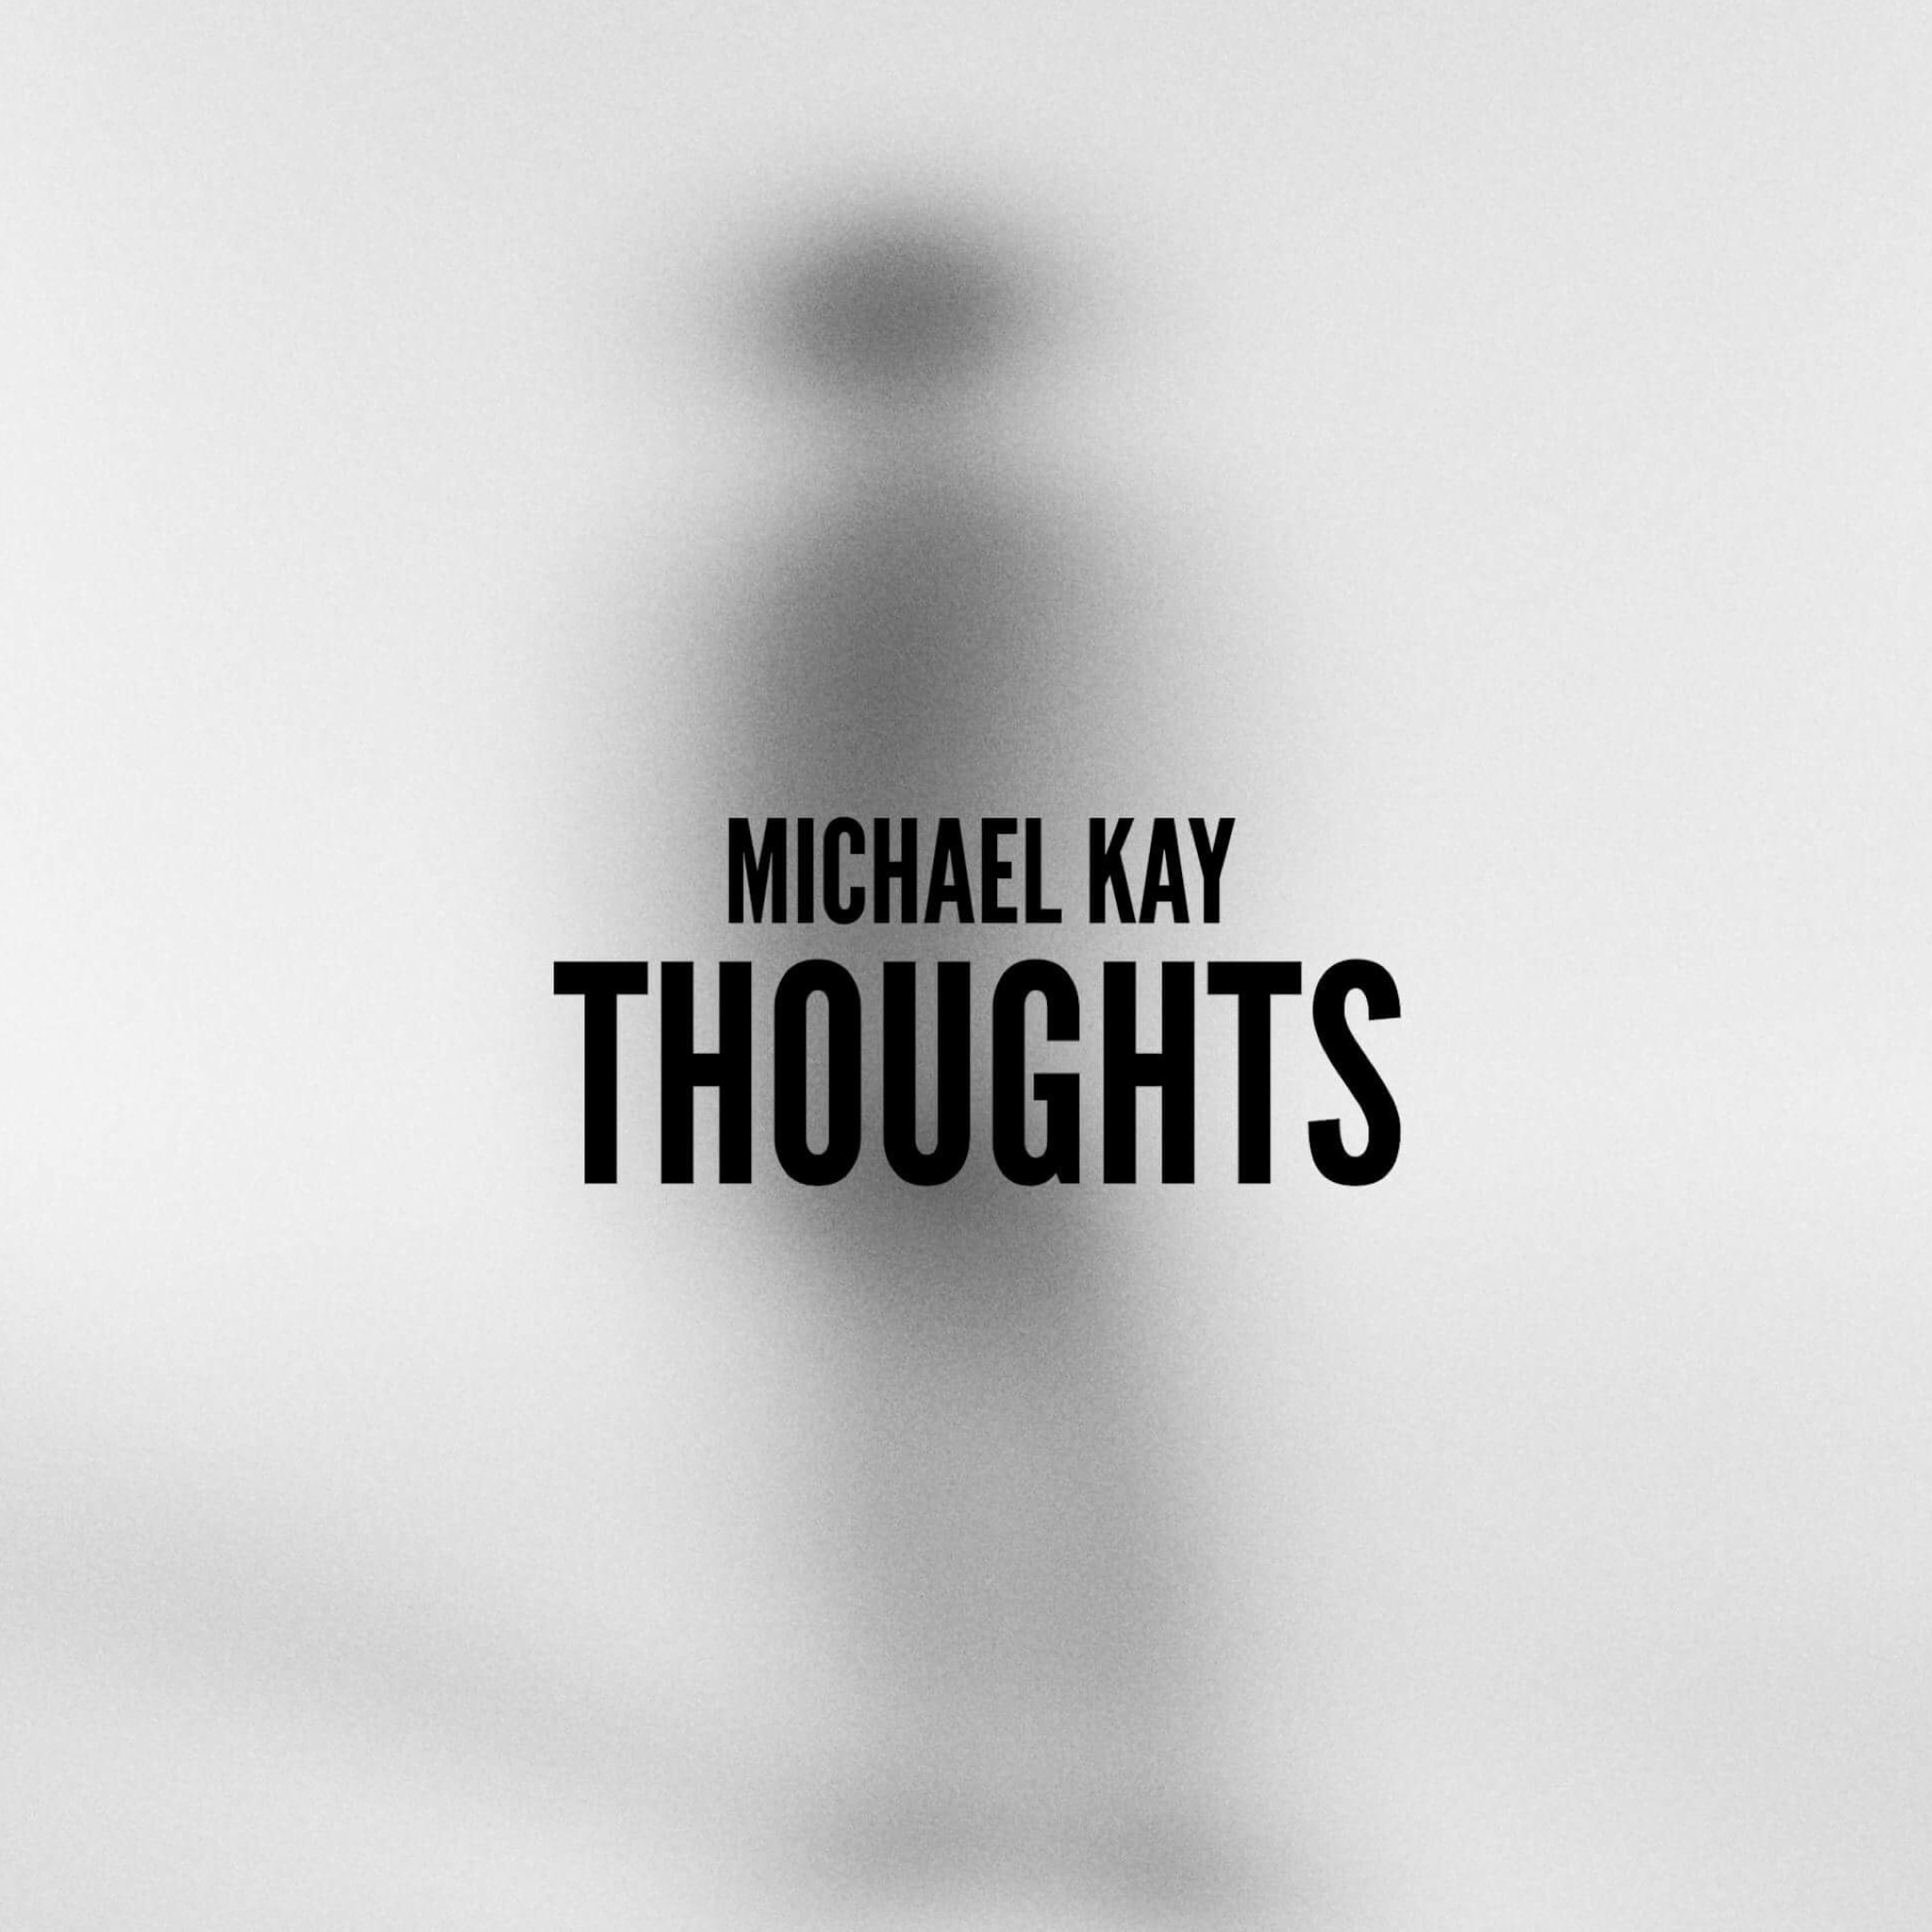 THOUGHTS -